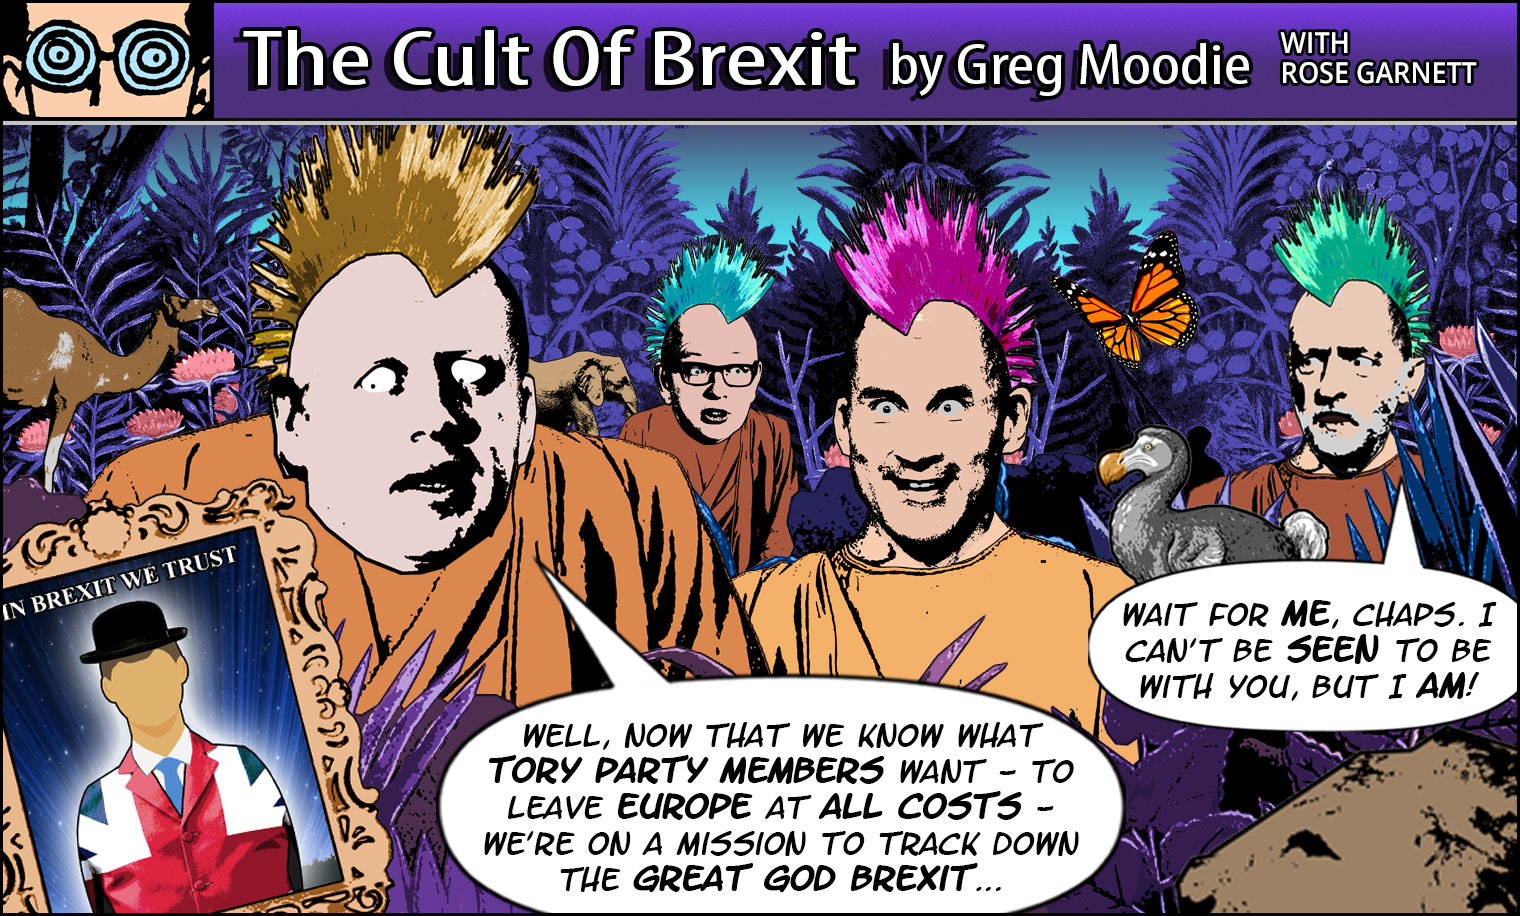 The Cult Of Brexit